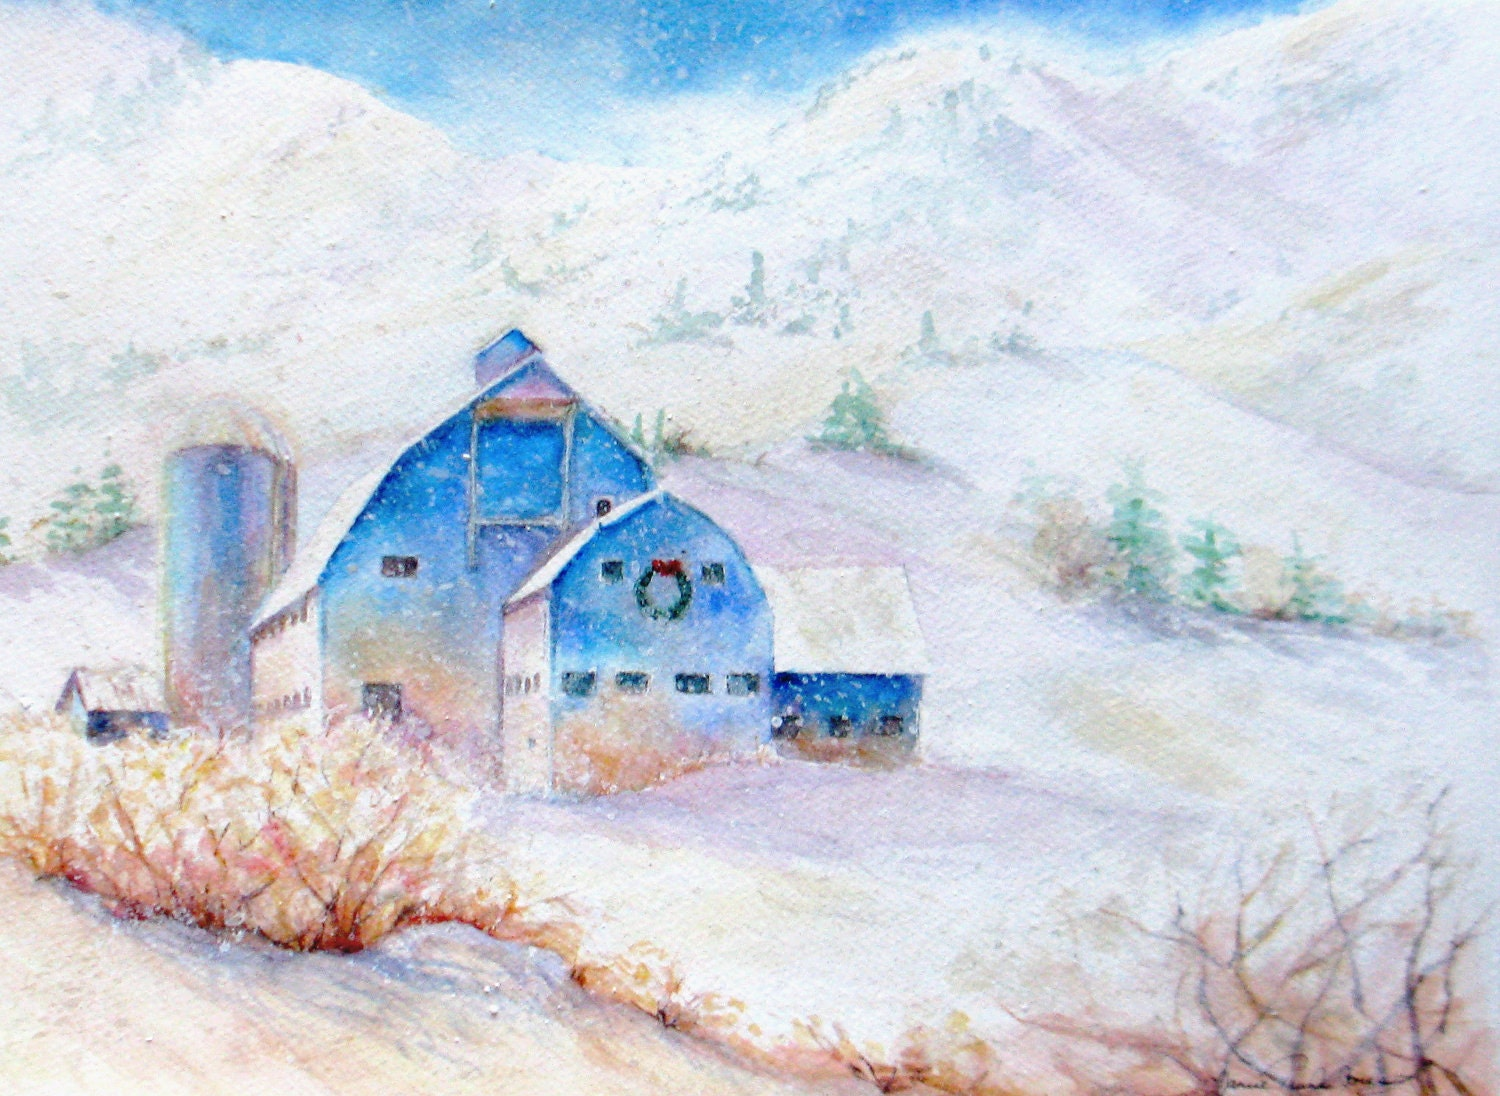 Farm Winter Snow Original Watercolor Painting By